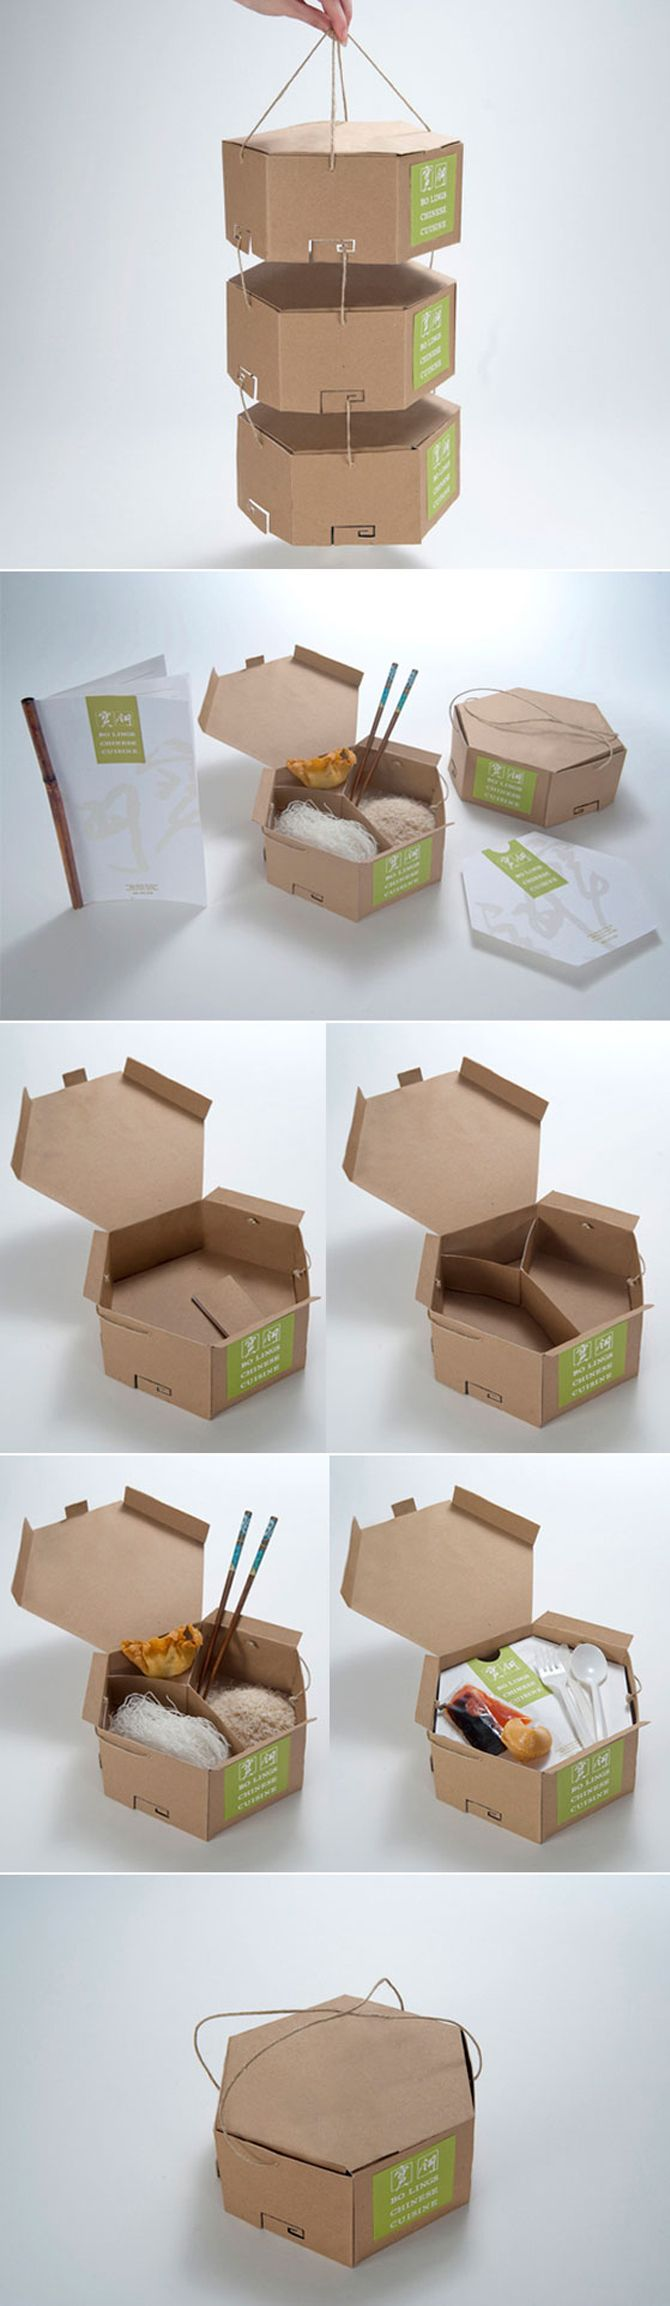 another great take-away #packaging #design and this one is #eco-friendly! Creative distinctive